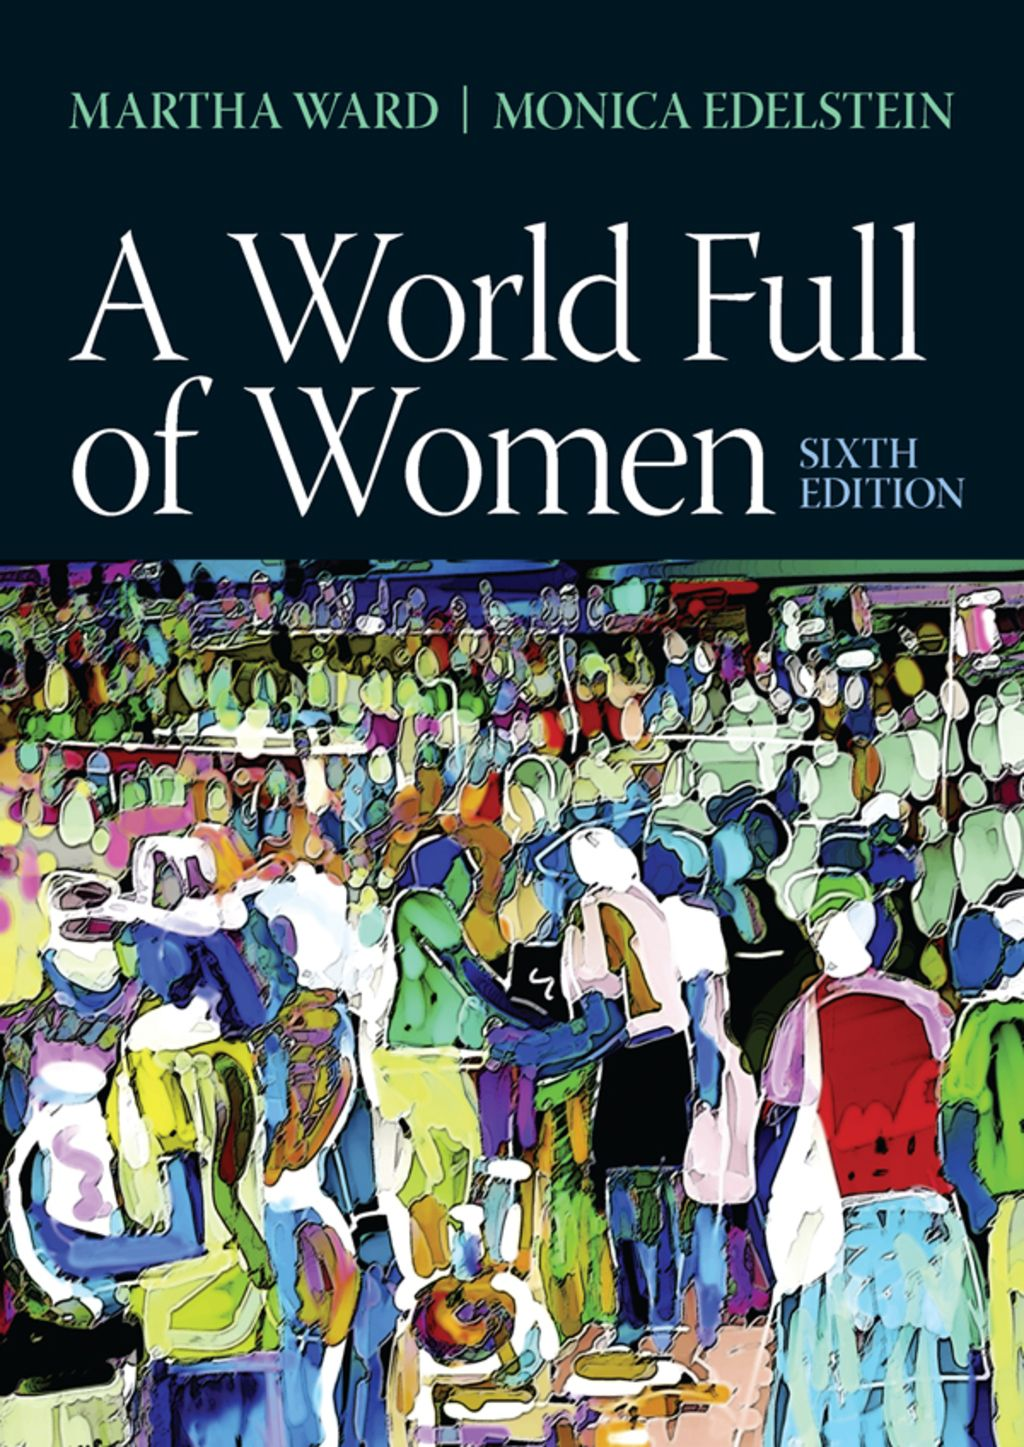 A World Full Of Women Ebook Rental Products In 2019 Books